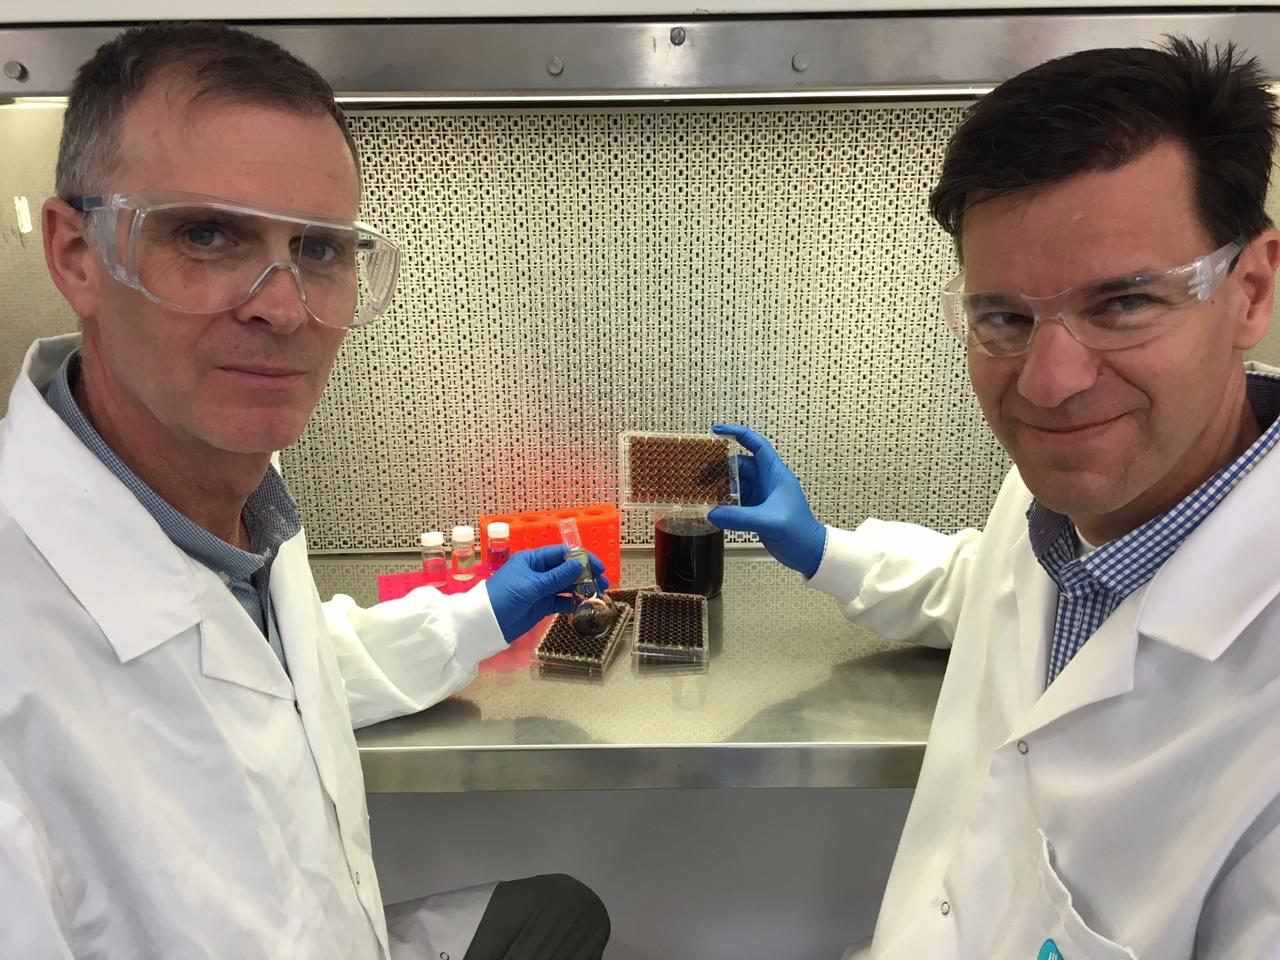 Dr. Richard Evans (left) and Dr. Helmut Thissen have developed a coating for medical devices, inspired by the beginnings of life